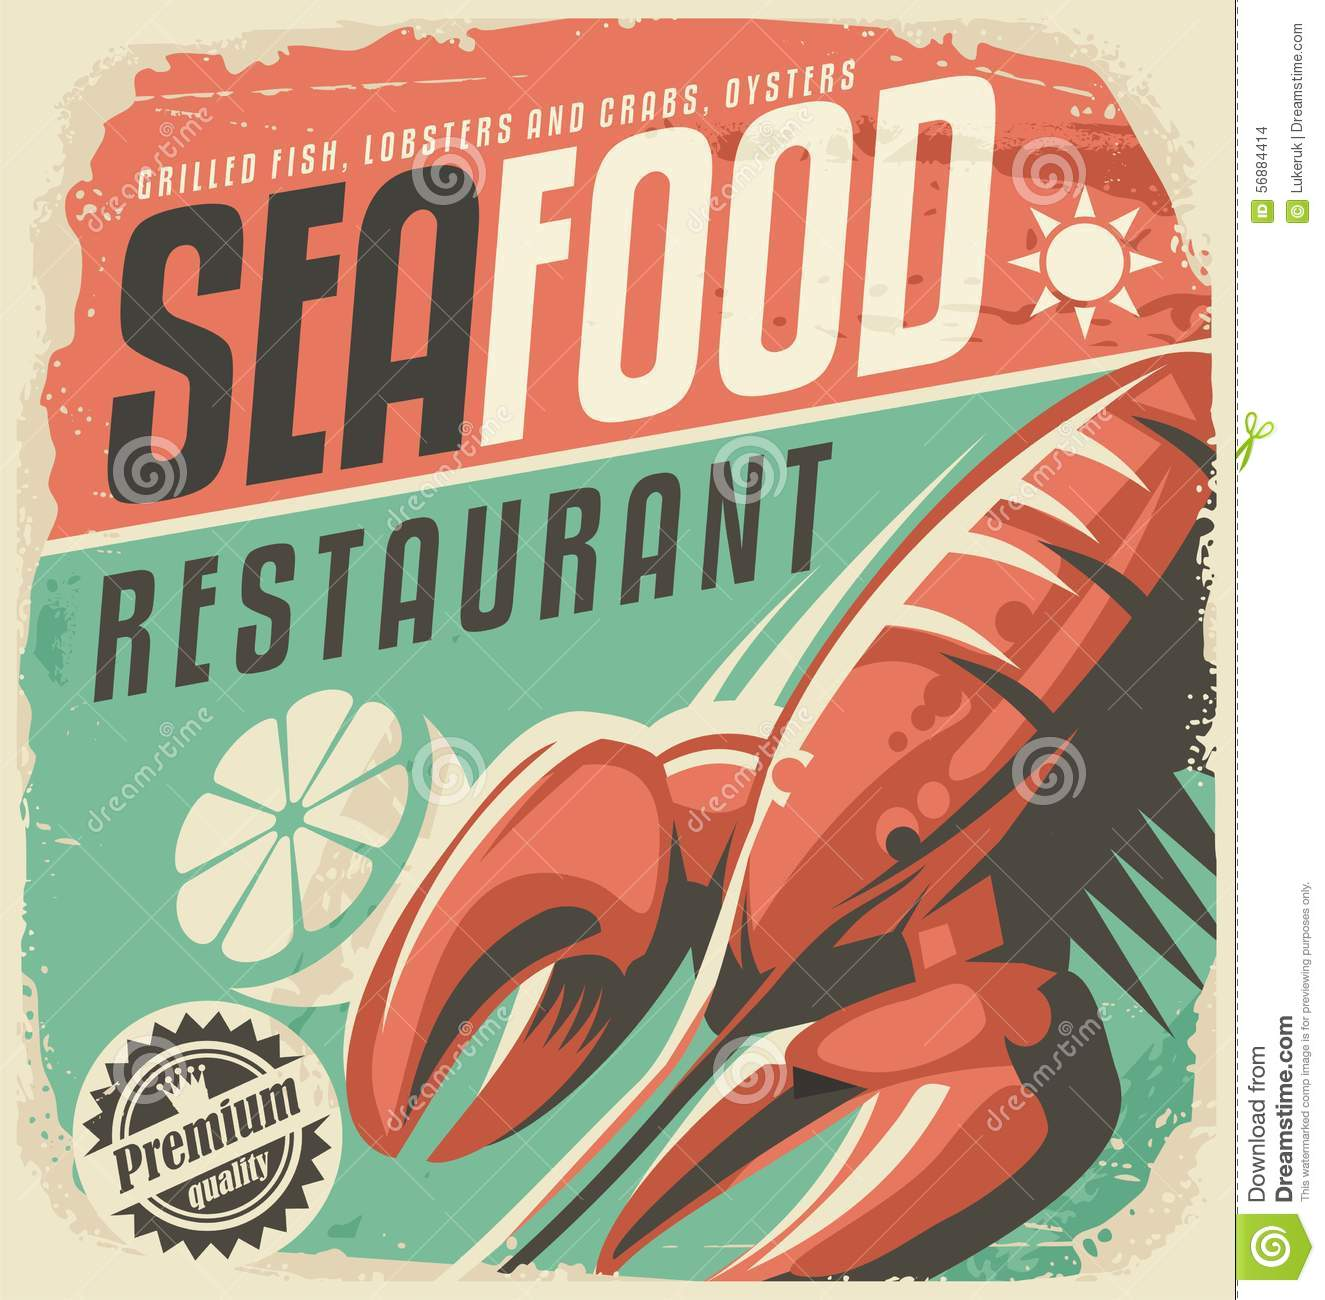 Retro Seafood Restaurant Poster With Lobster Stock Vector - Image: 56884414